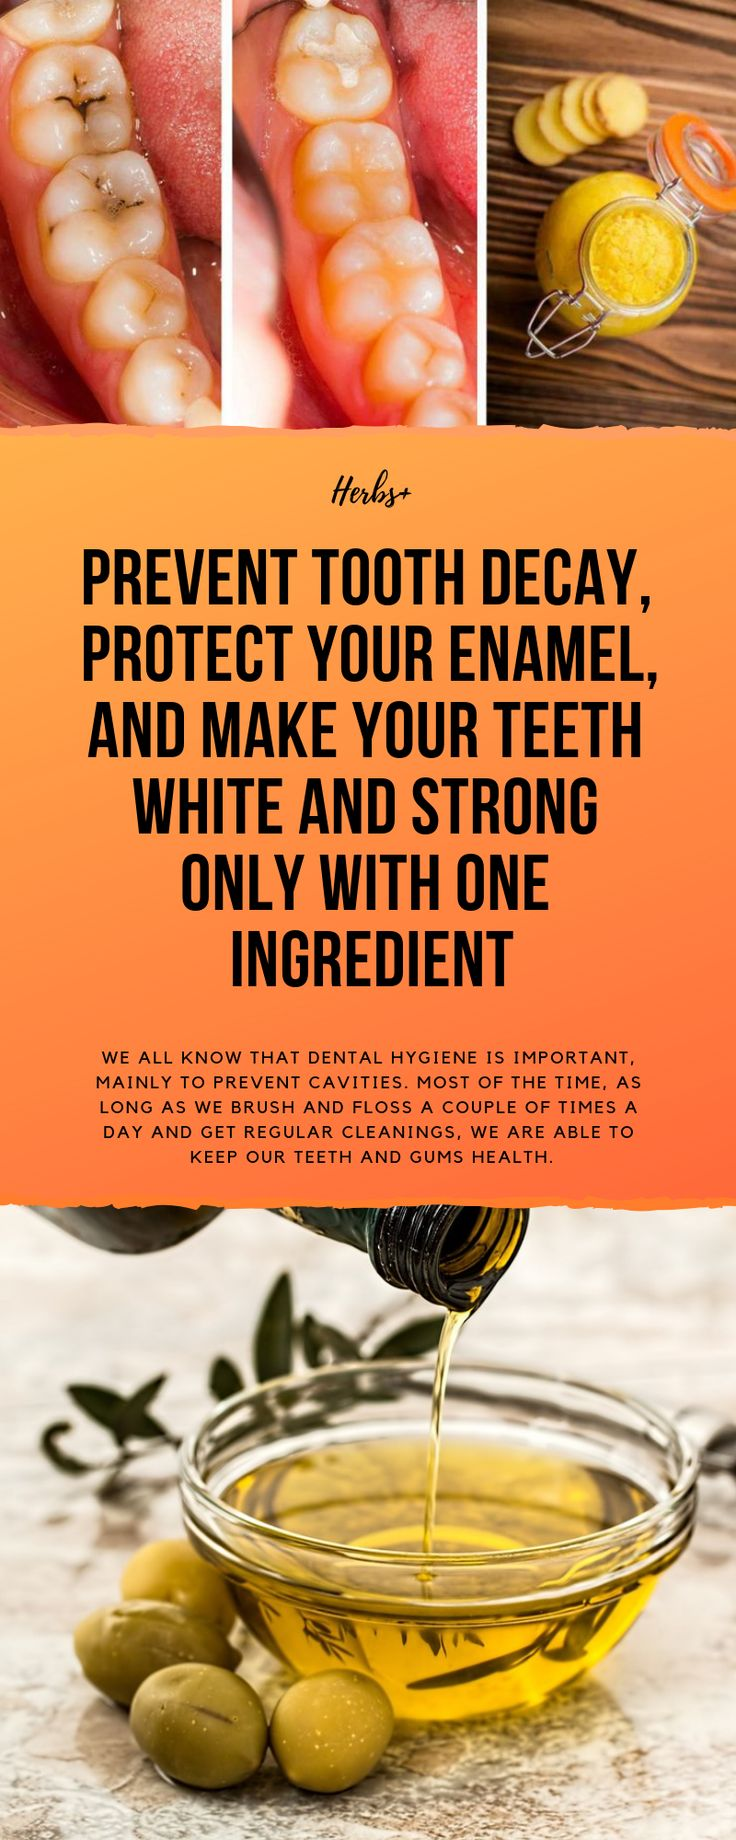 Prevent Tooth Decay, Protect Your Enamel, And Make Your